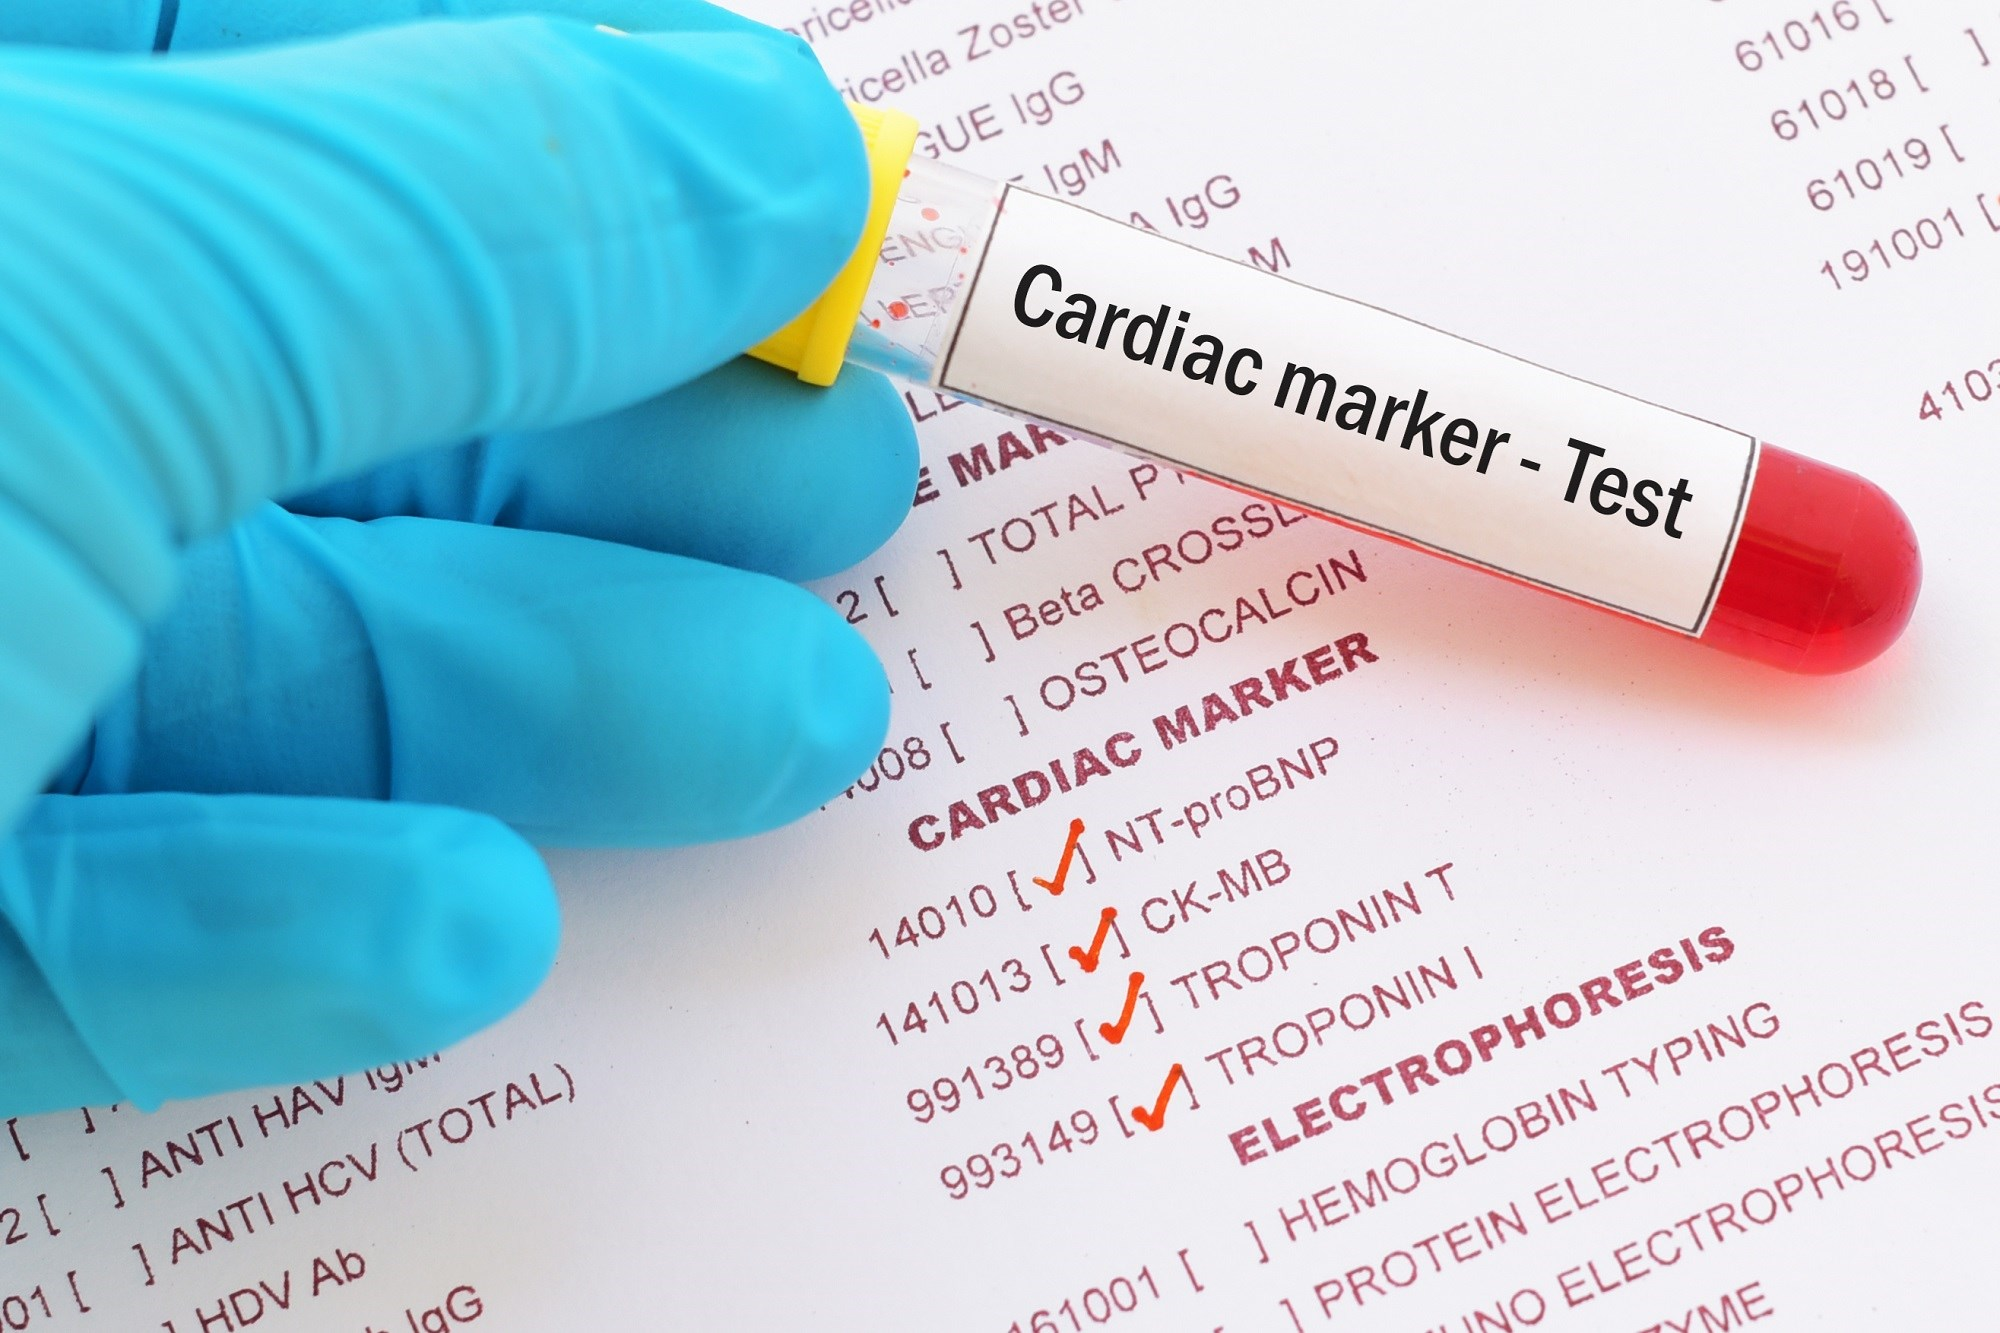 Natriuretic peptides and high-sensitive troponin may be useful for cardiac risk stratification in acute syncope.